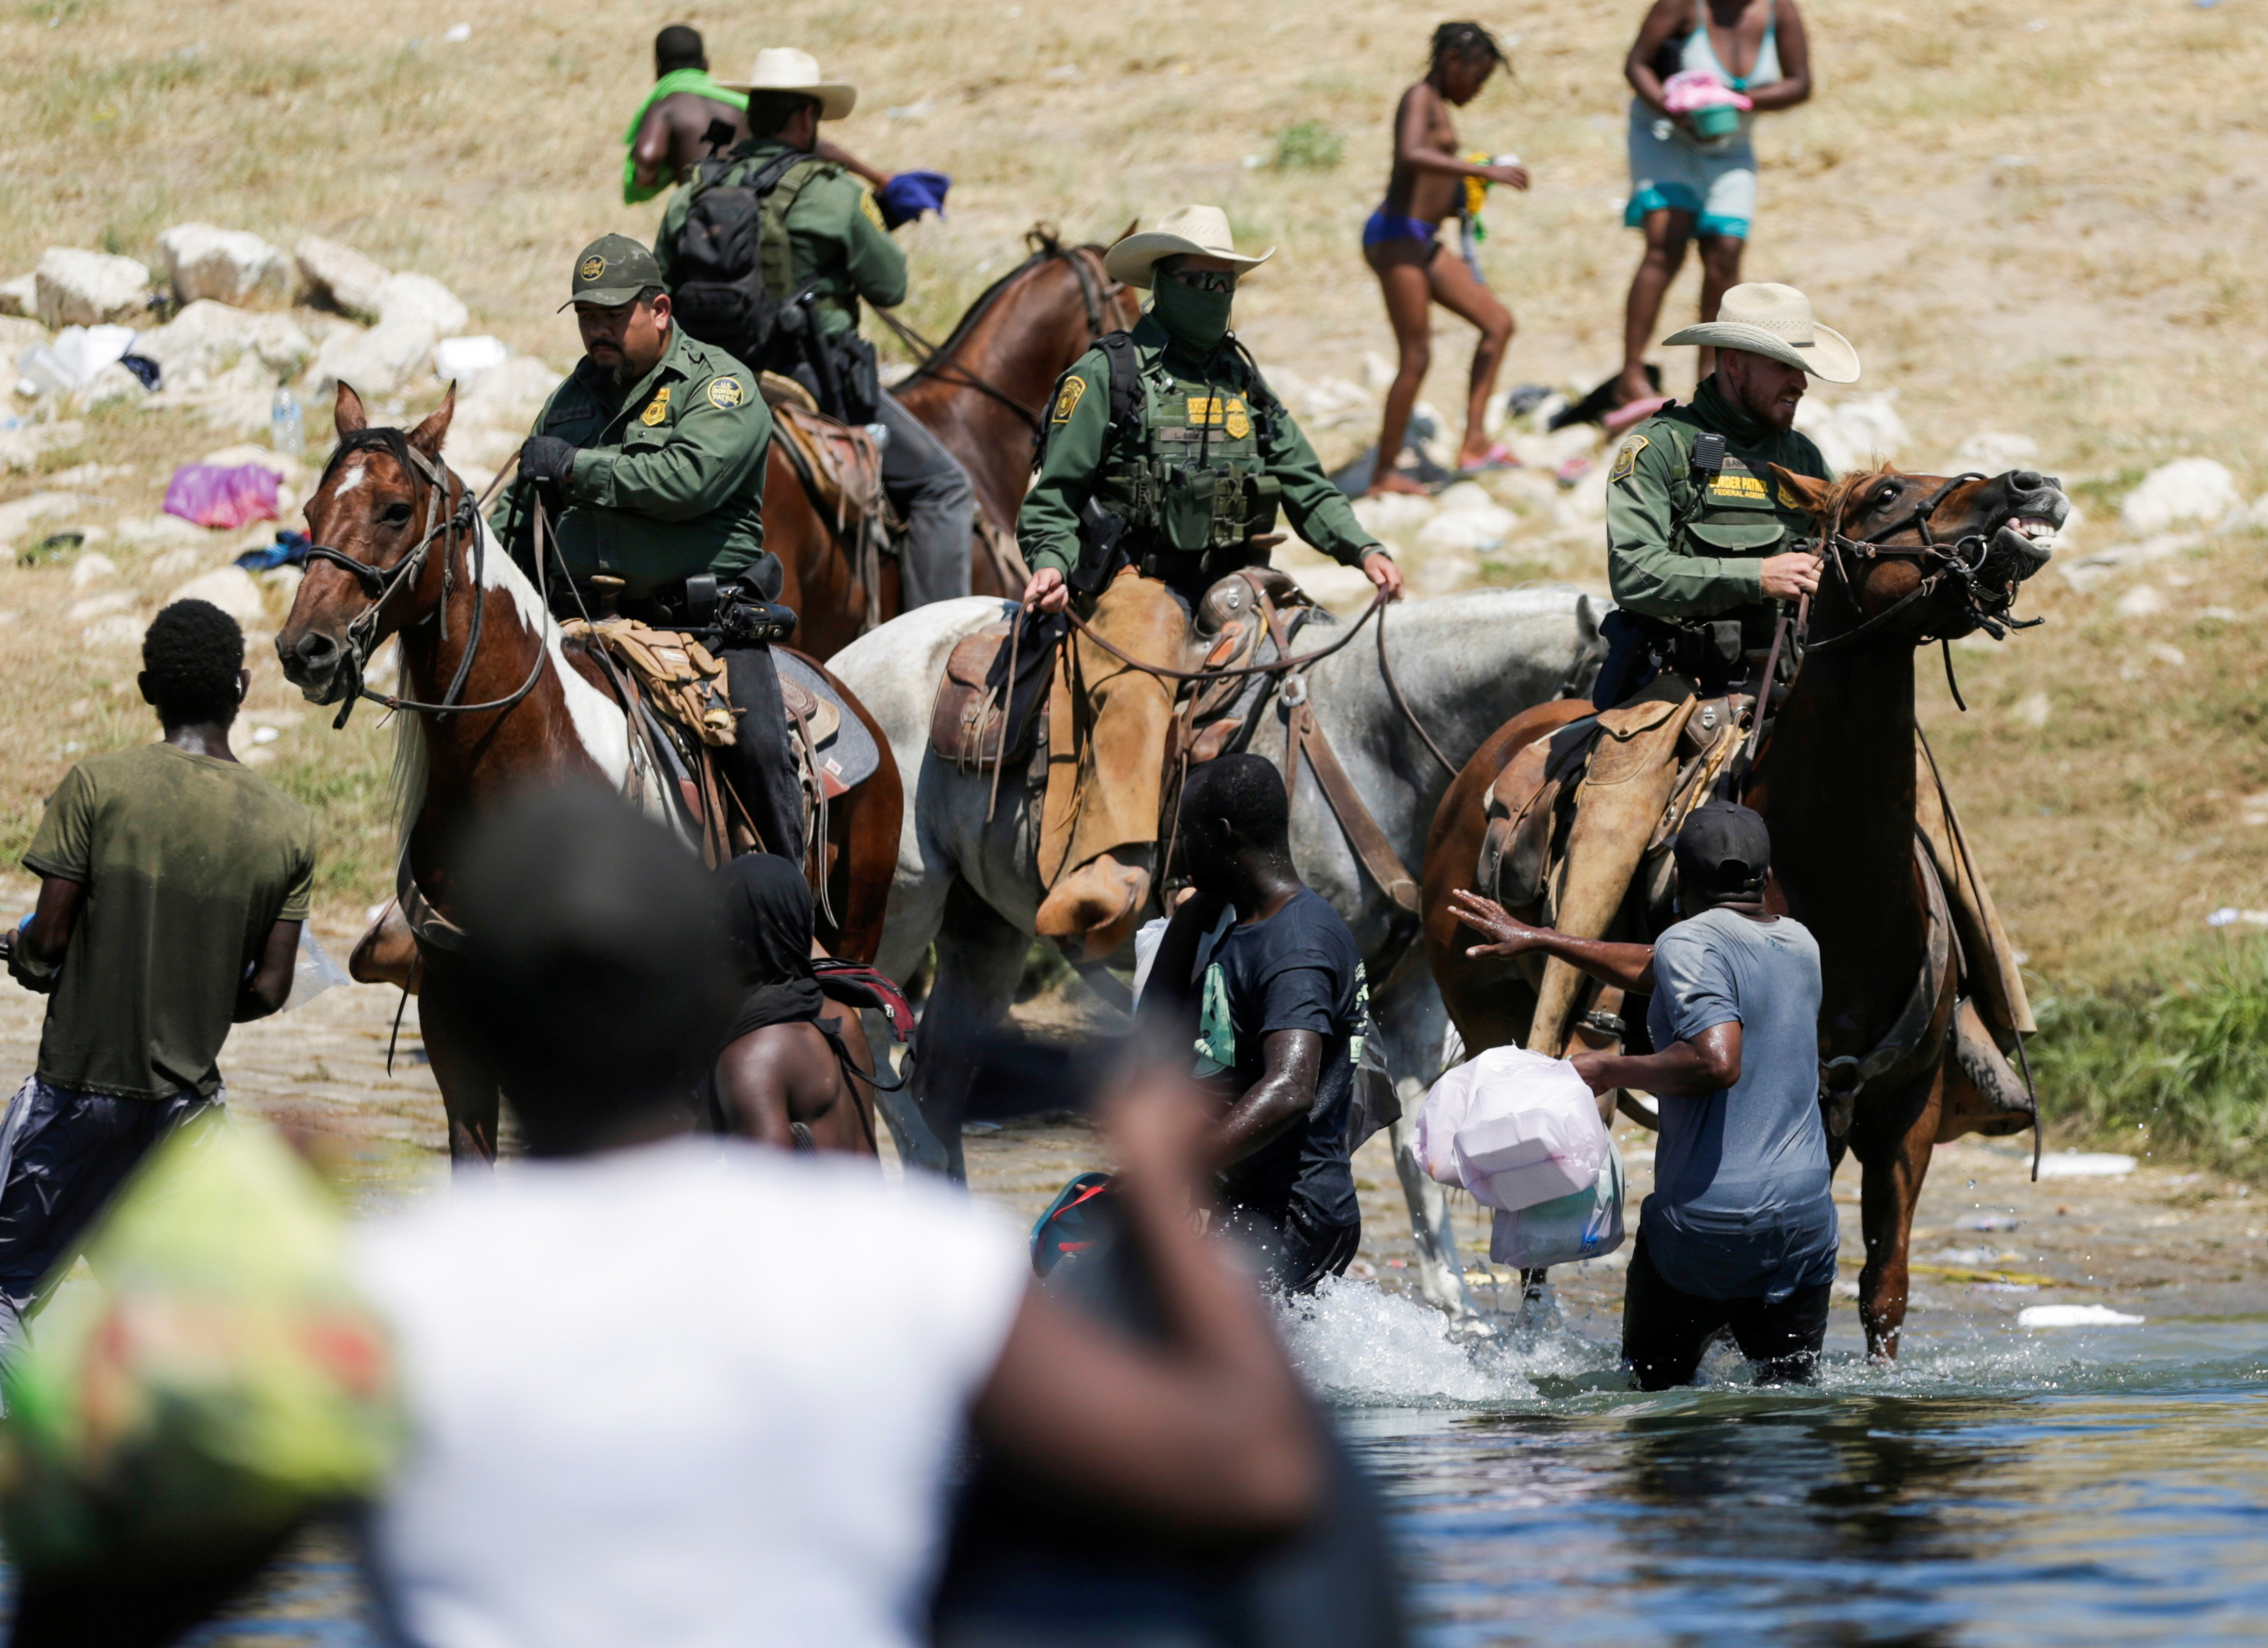 U.S. law enforcement officers on horseback block the way to migrants reaching the shores of the Rio Grande as they try to return to the United States after buying food in Mexico, as seen from Ciudad Acuna, Mexico September 19, 2021. Picture taken September 19, 2021. REUTERS/Daniel Becerril